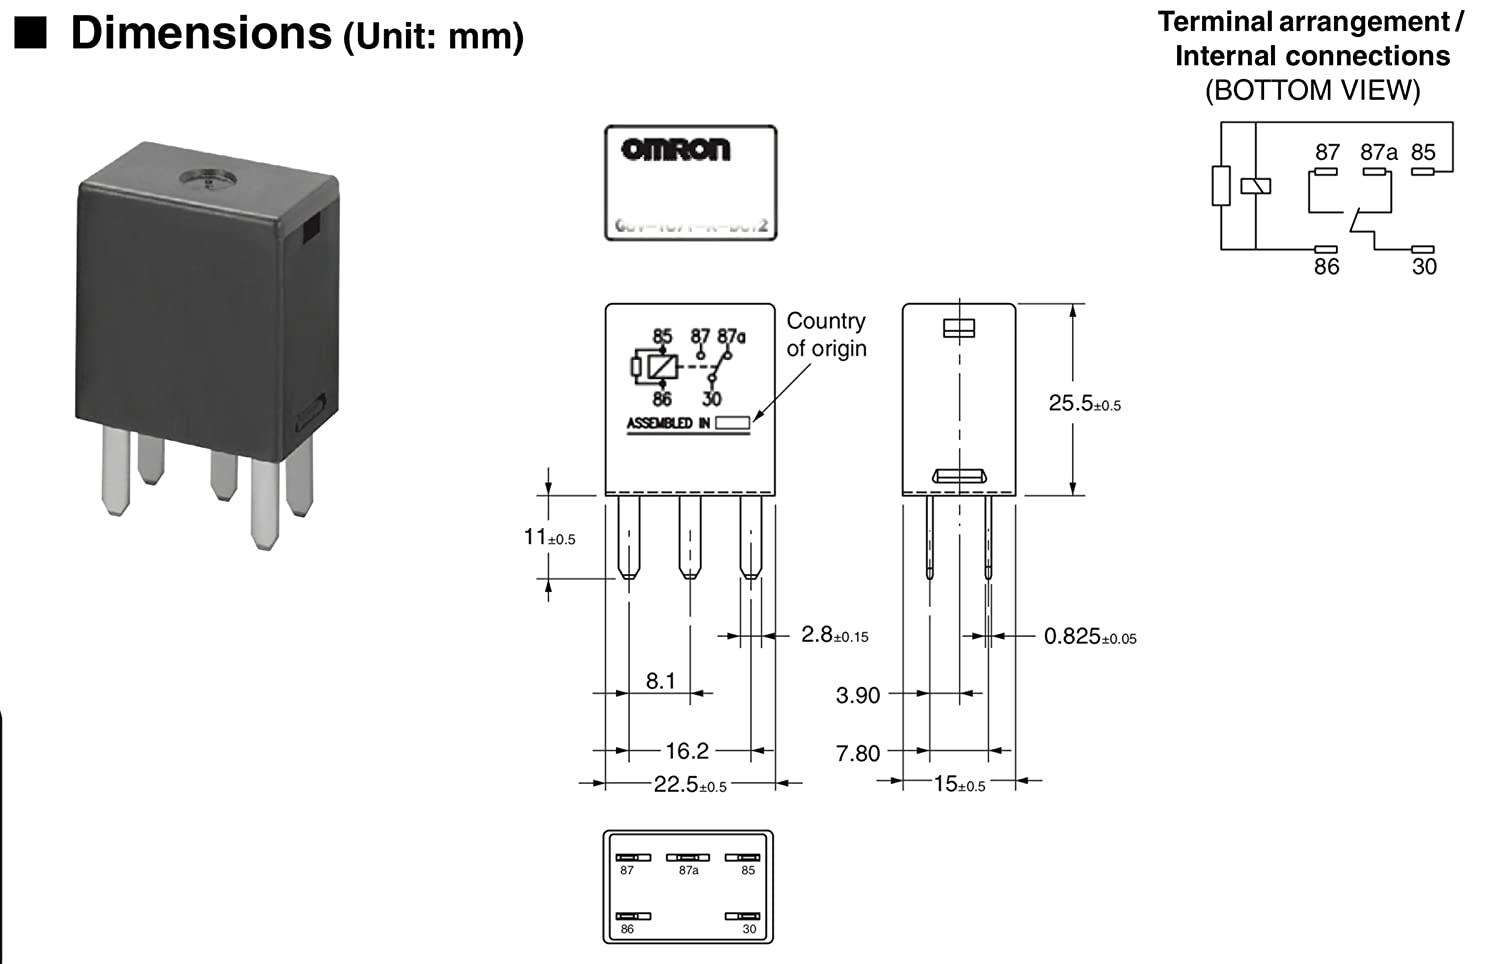 Omron 7866 relay diagram diy wiring diagrams amazon com omron gm 5 pin black 12077866 replacement for relay 5810 rh amazon com omron relay diagram honda g8va 1a4t r01 relay swarovskicordoba